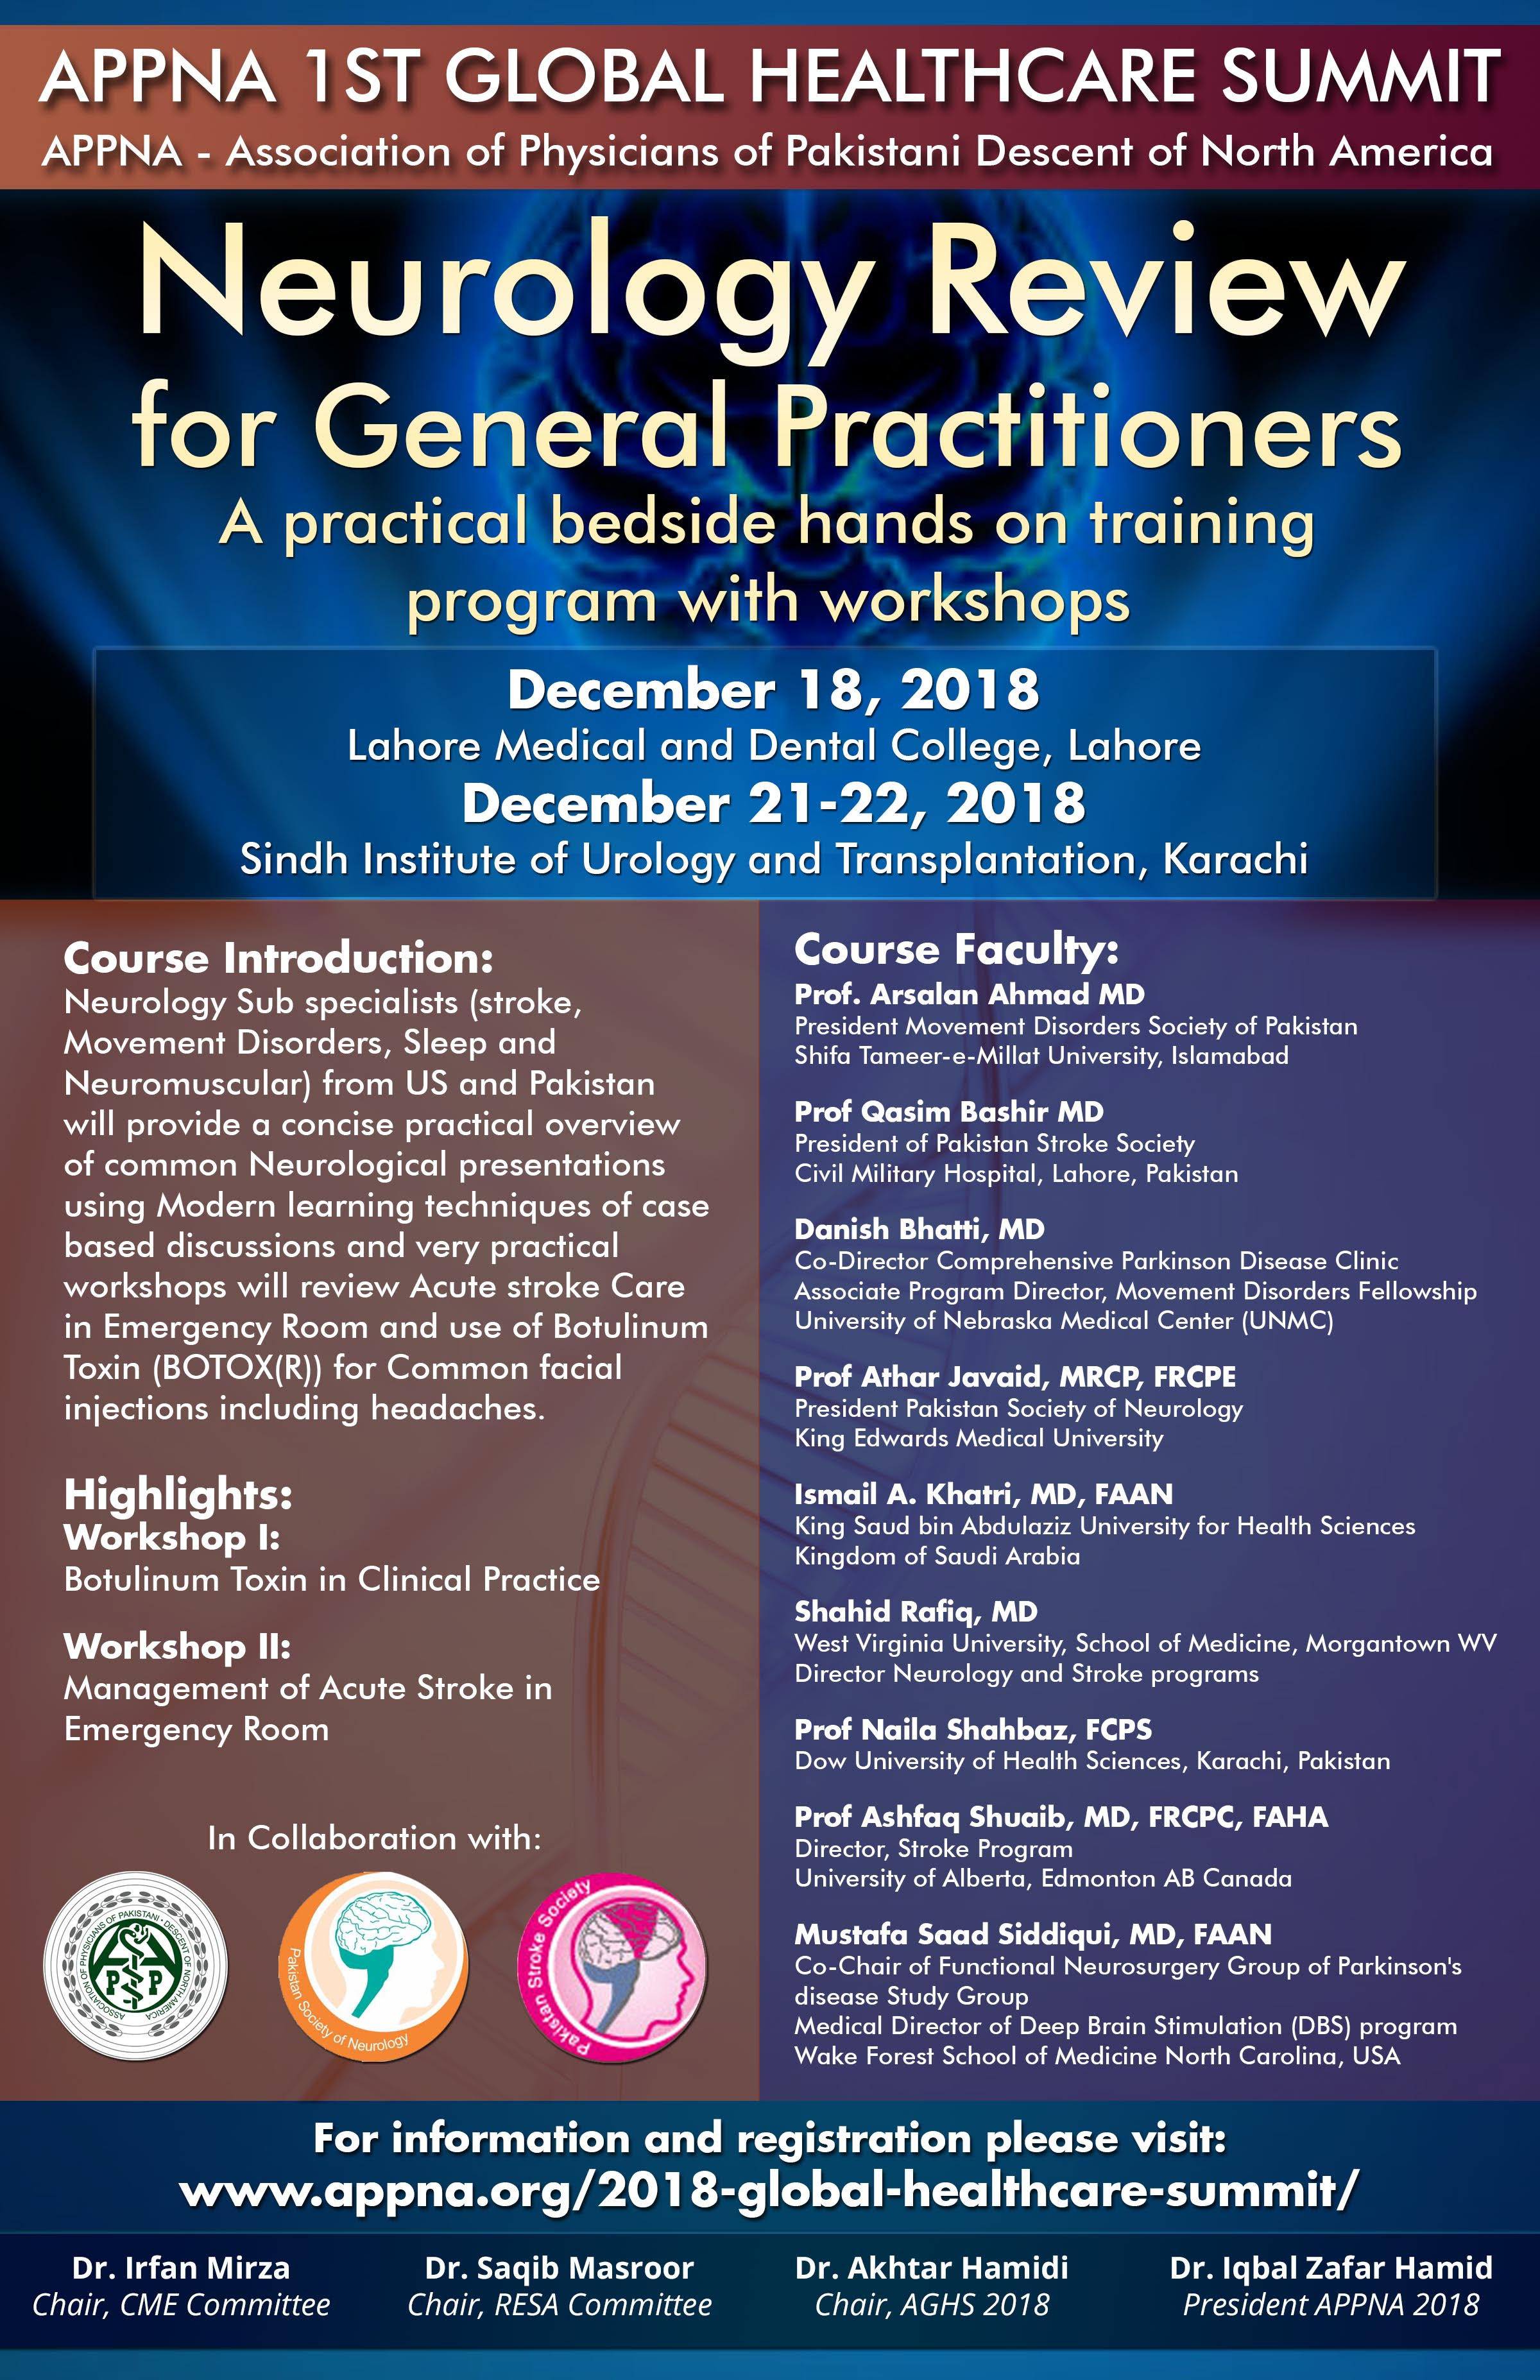 NEUROLOGY REVIEW FOR GENERAL PRACTITIONERS